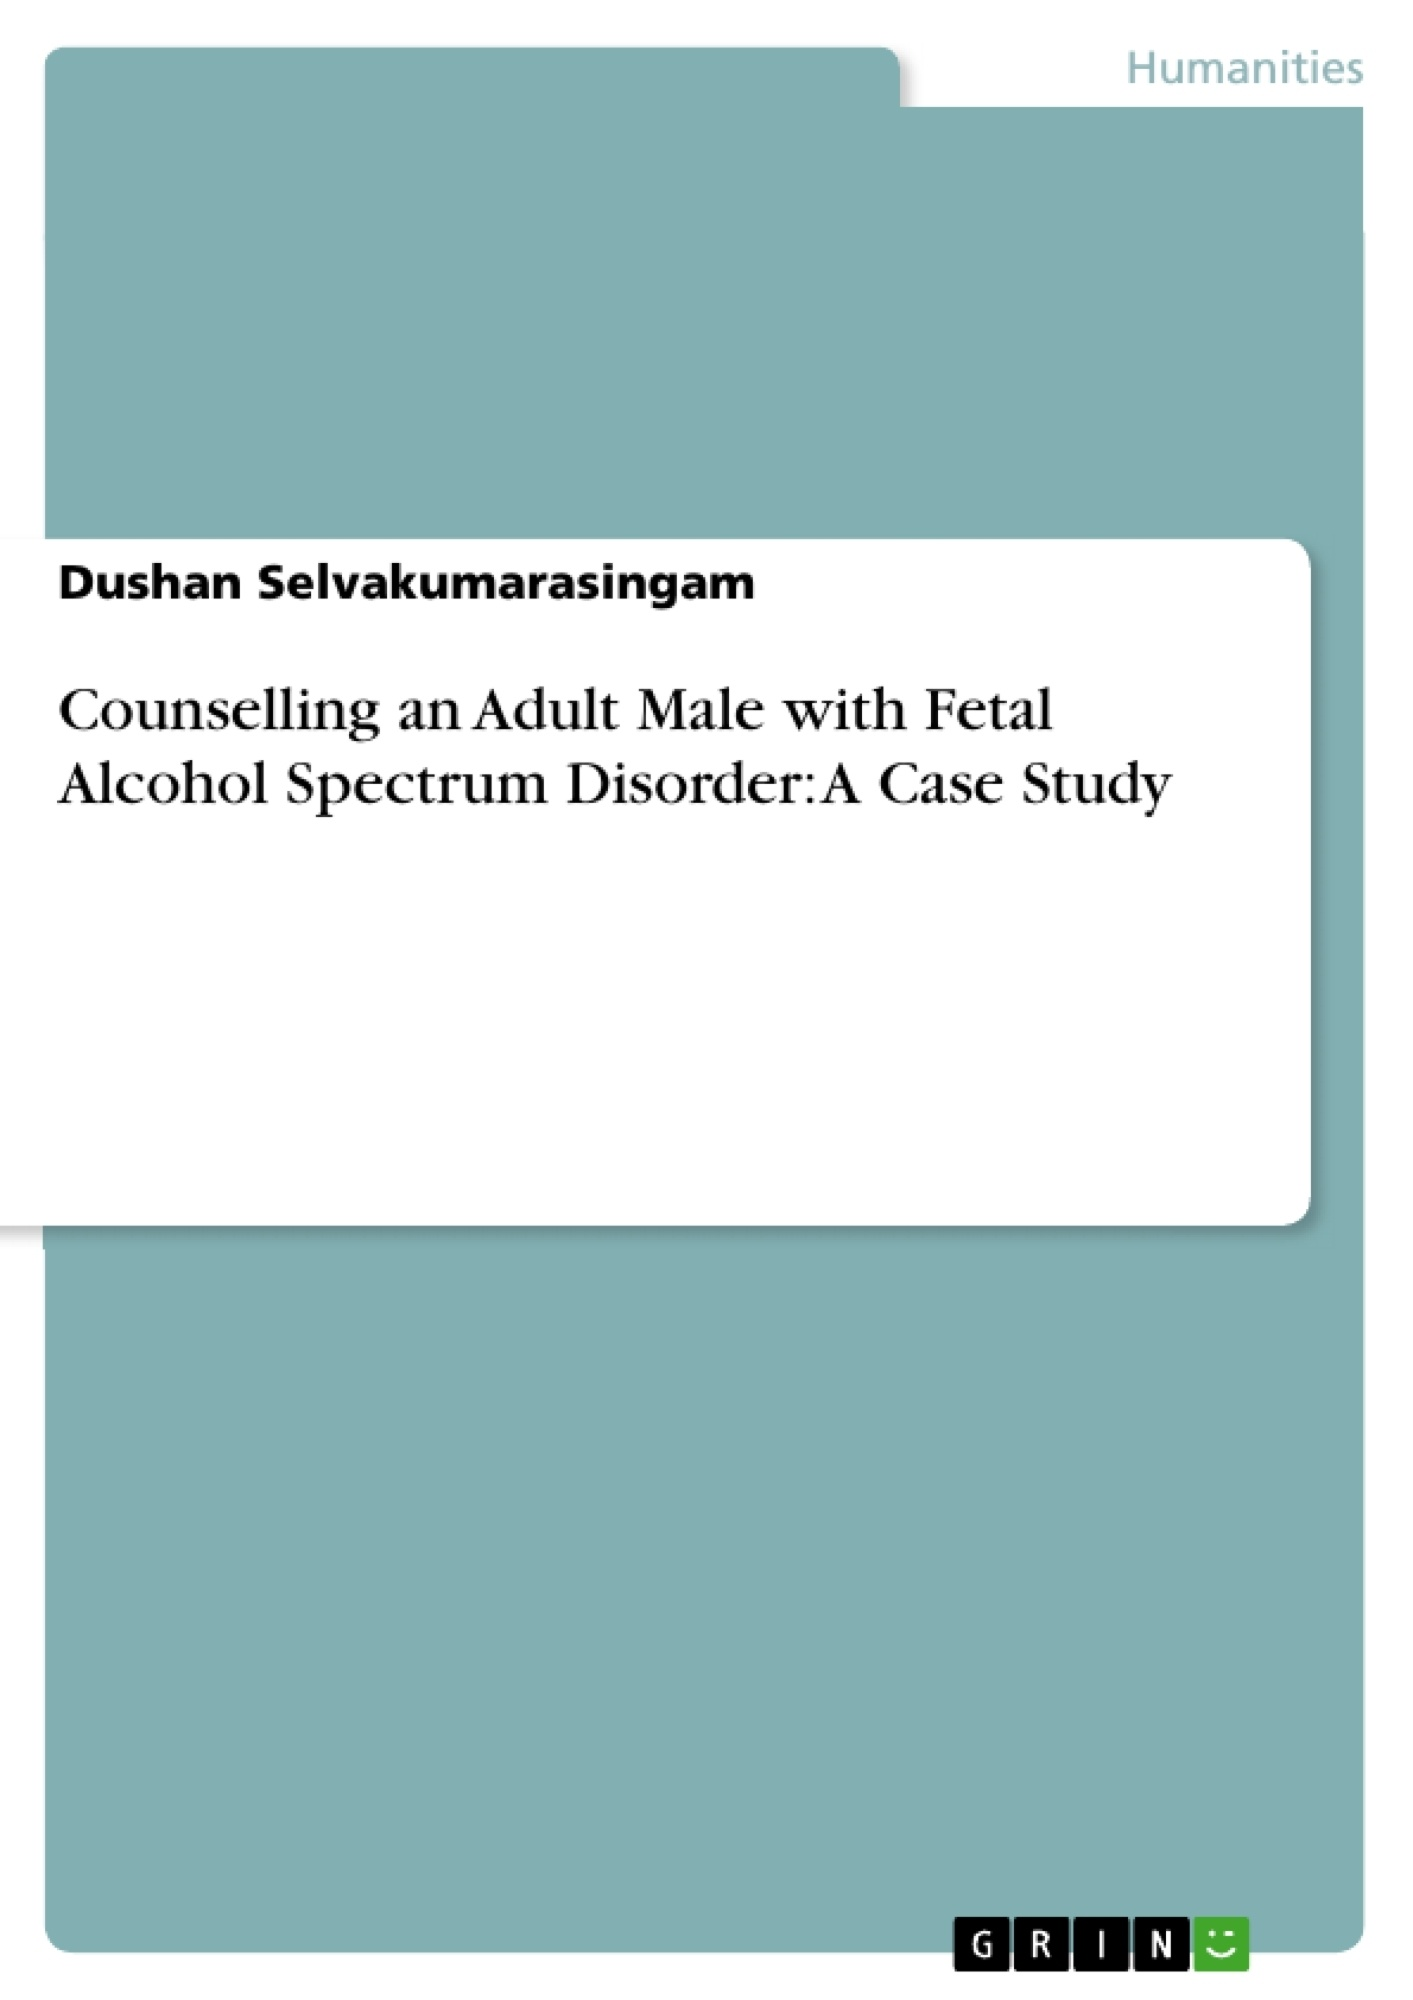 Title: Counselling an Adult Male with Fetal Alcohol Spectrum Disorder: A Case Study